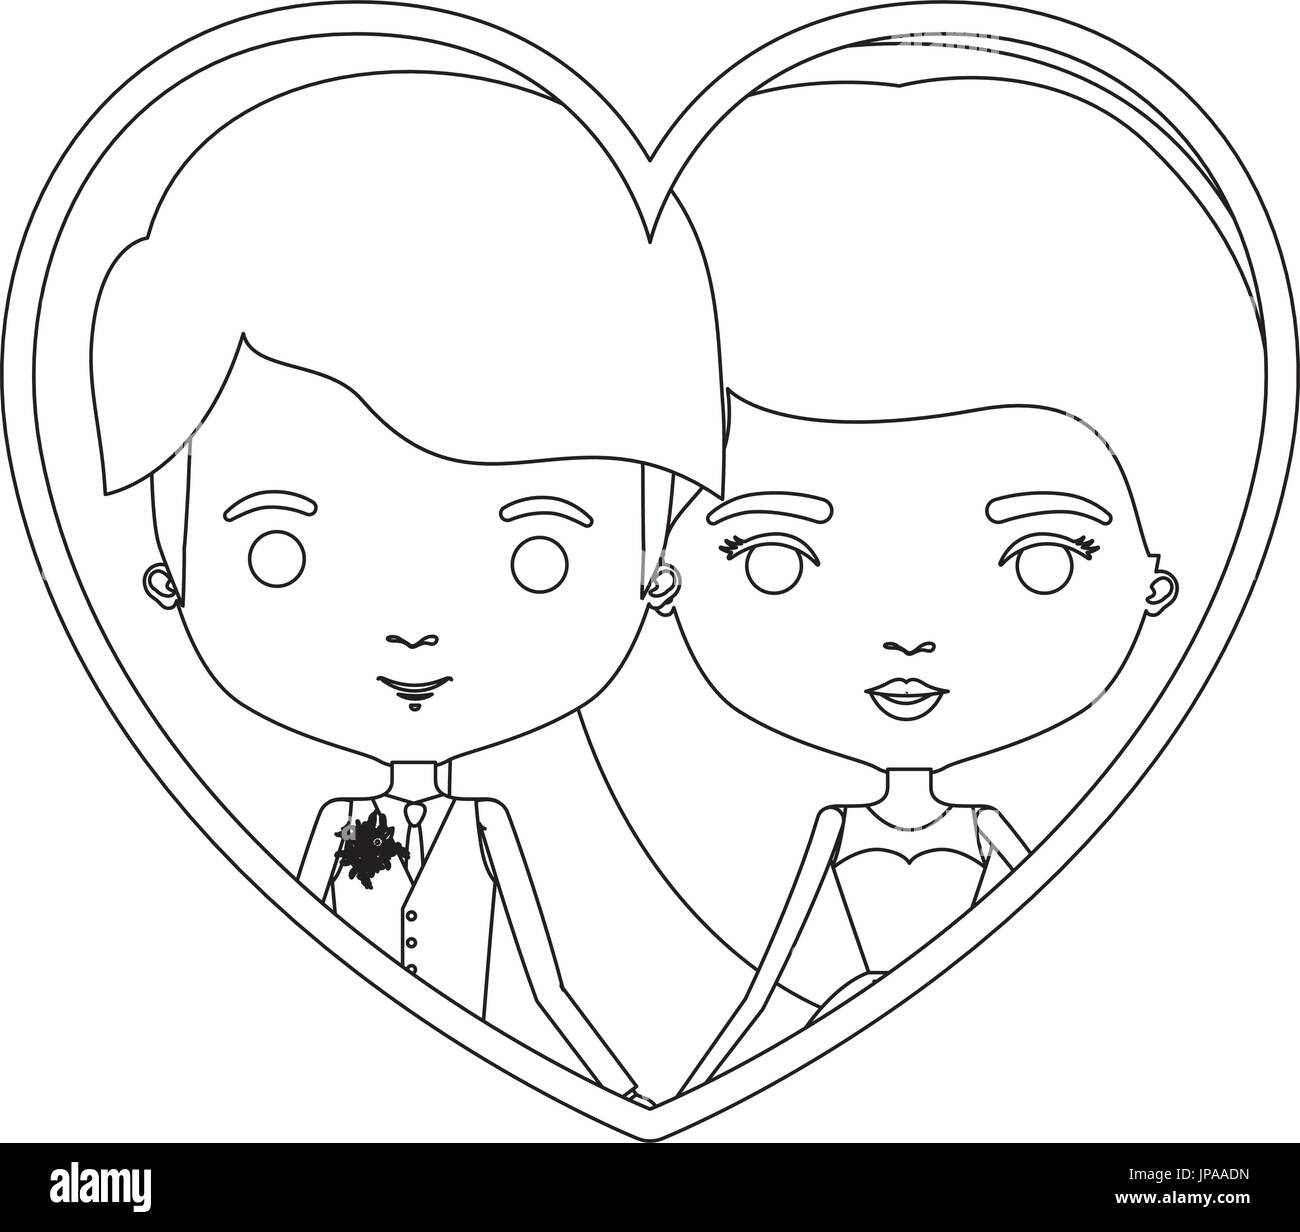 monochrome silhouette heart shape portrait caricature of newly married couple young groom with formal wear and bride with long hairstyle - Stock Image